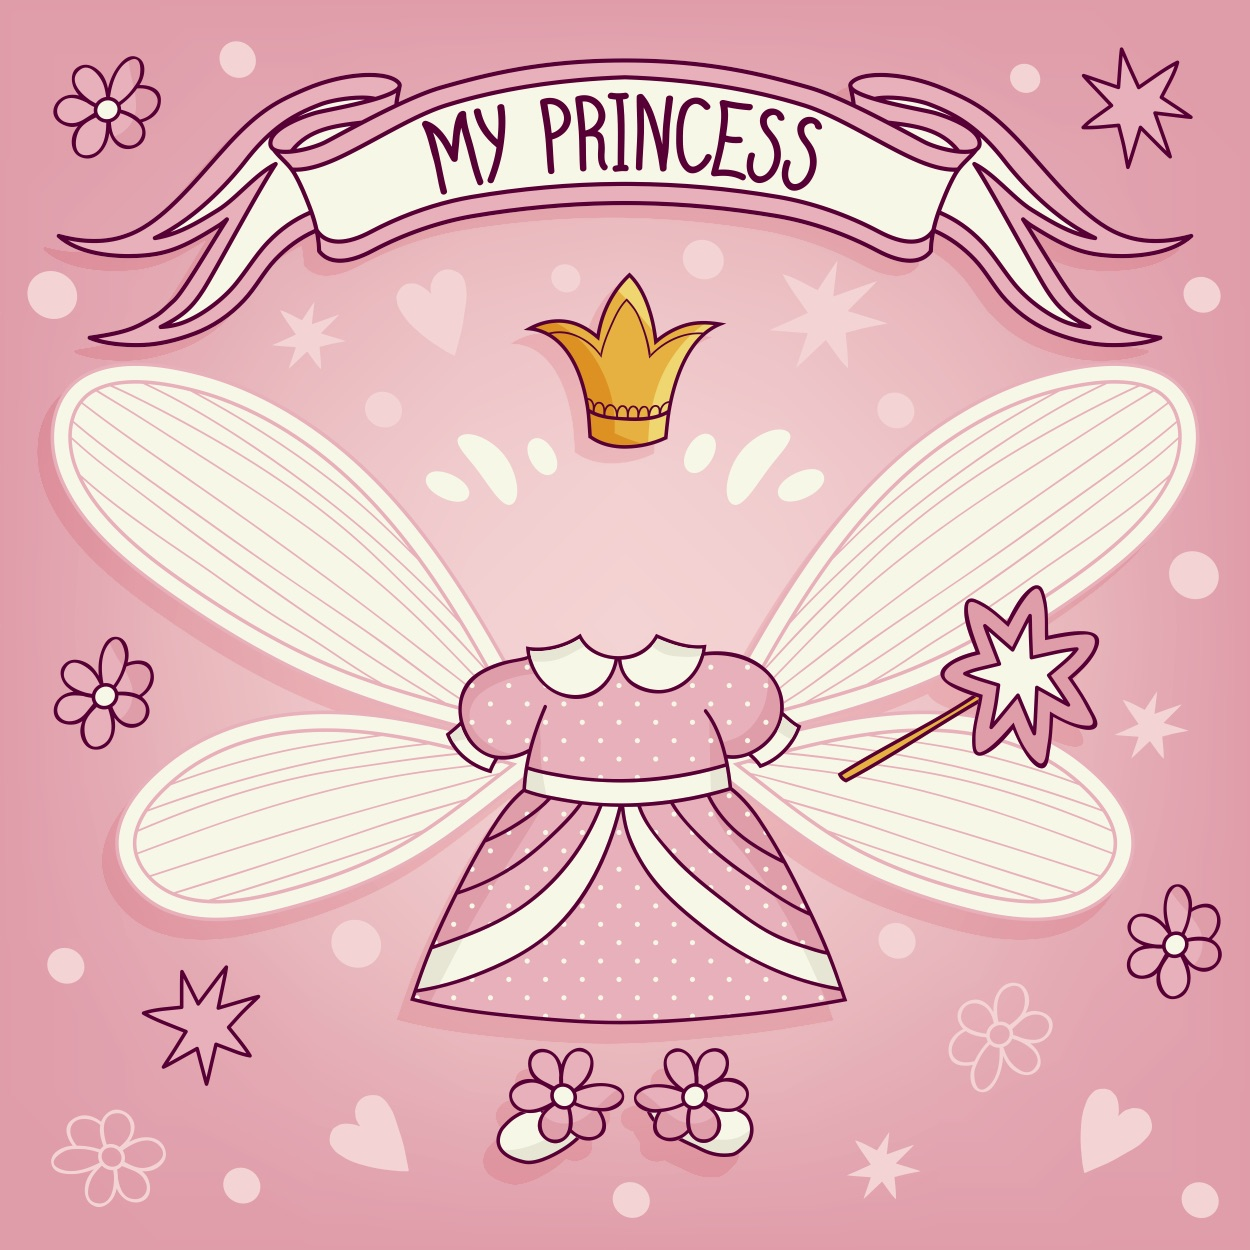 My Princess.jpg